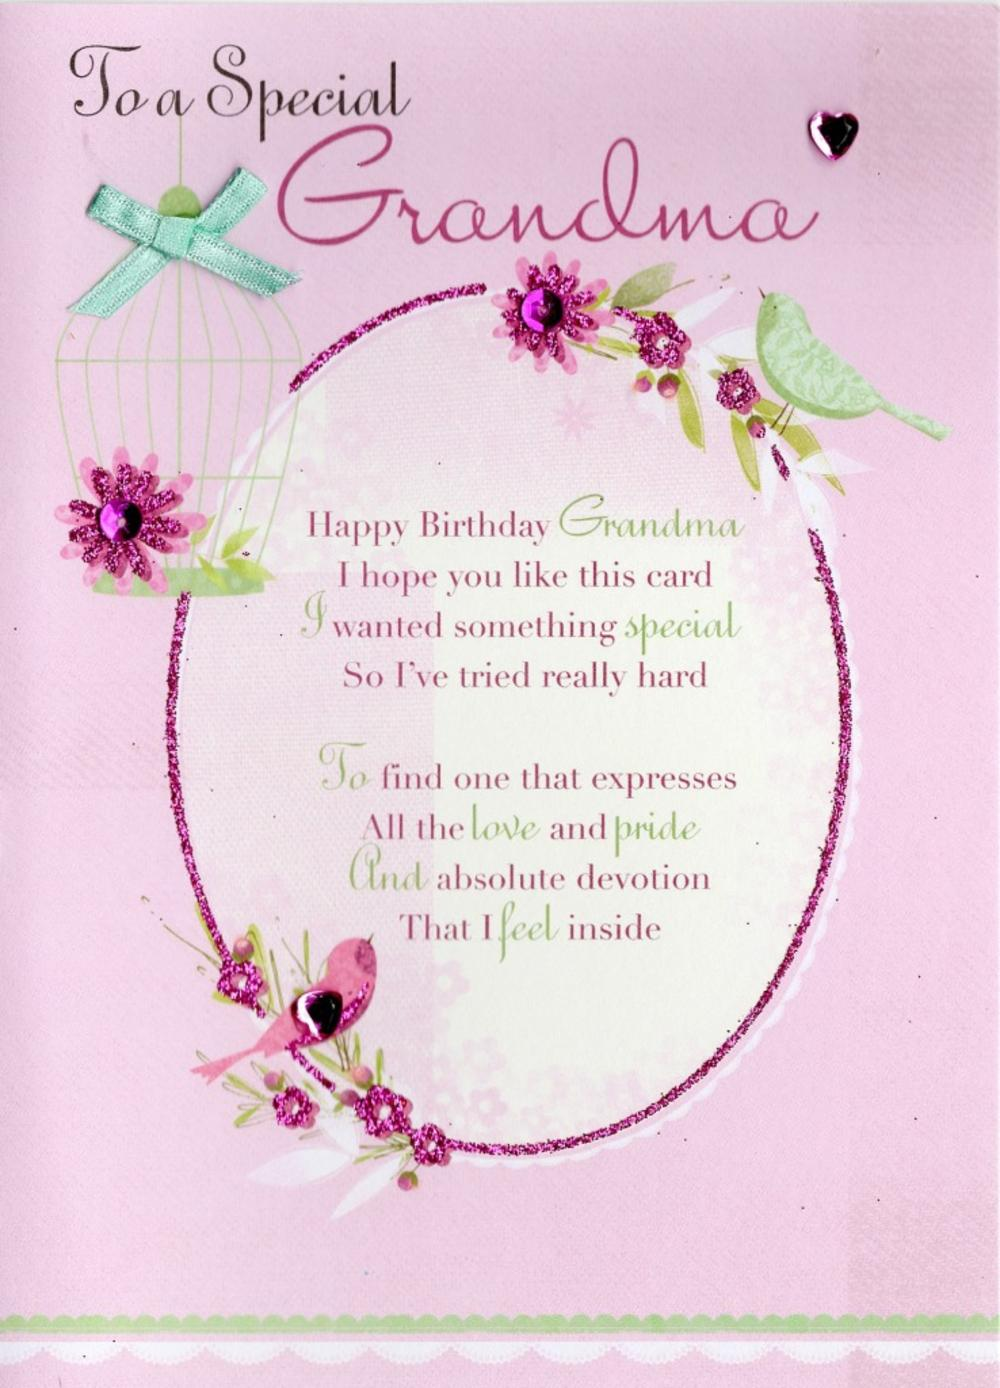 Special grandma birthday greeting card cards love kates for What to get grandma for her birthday